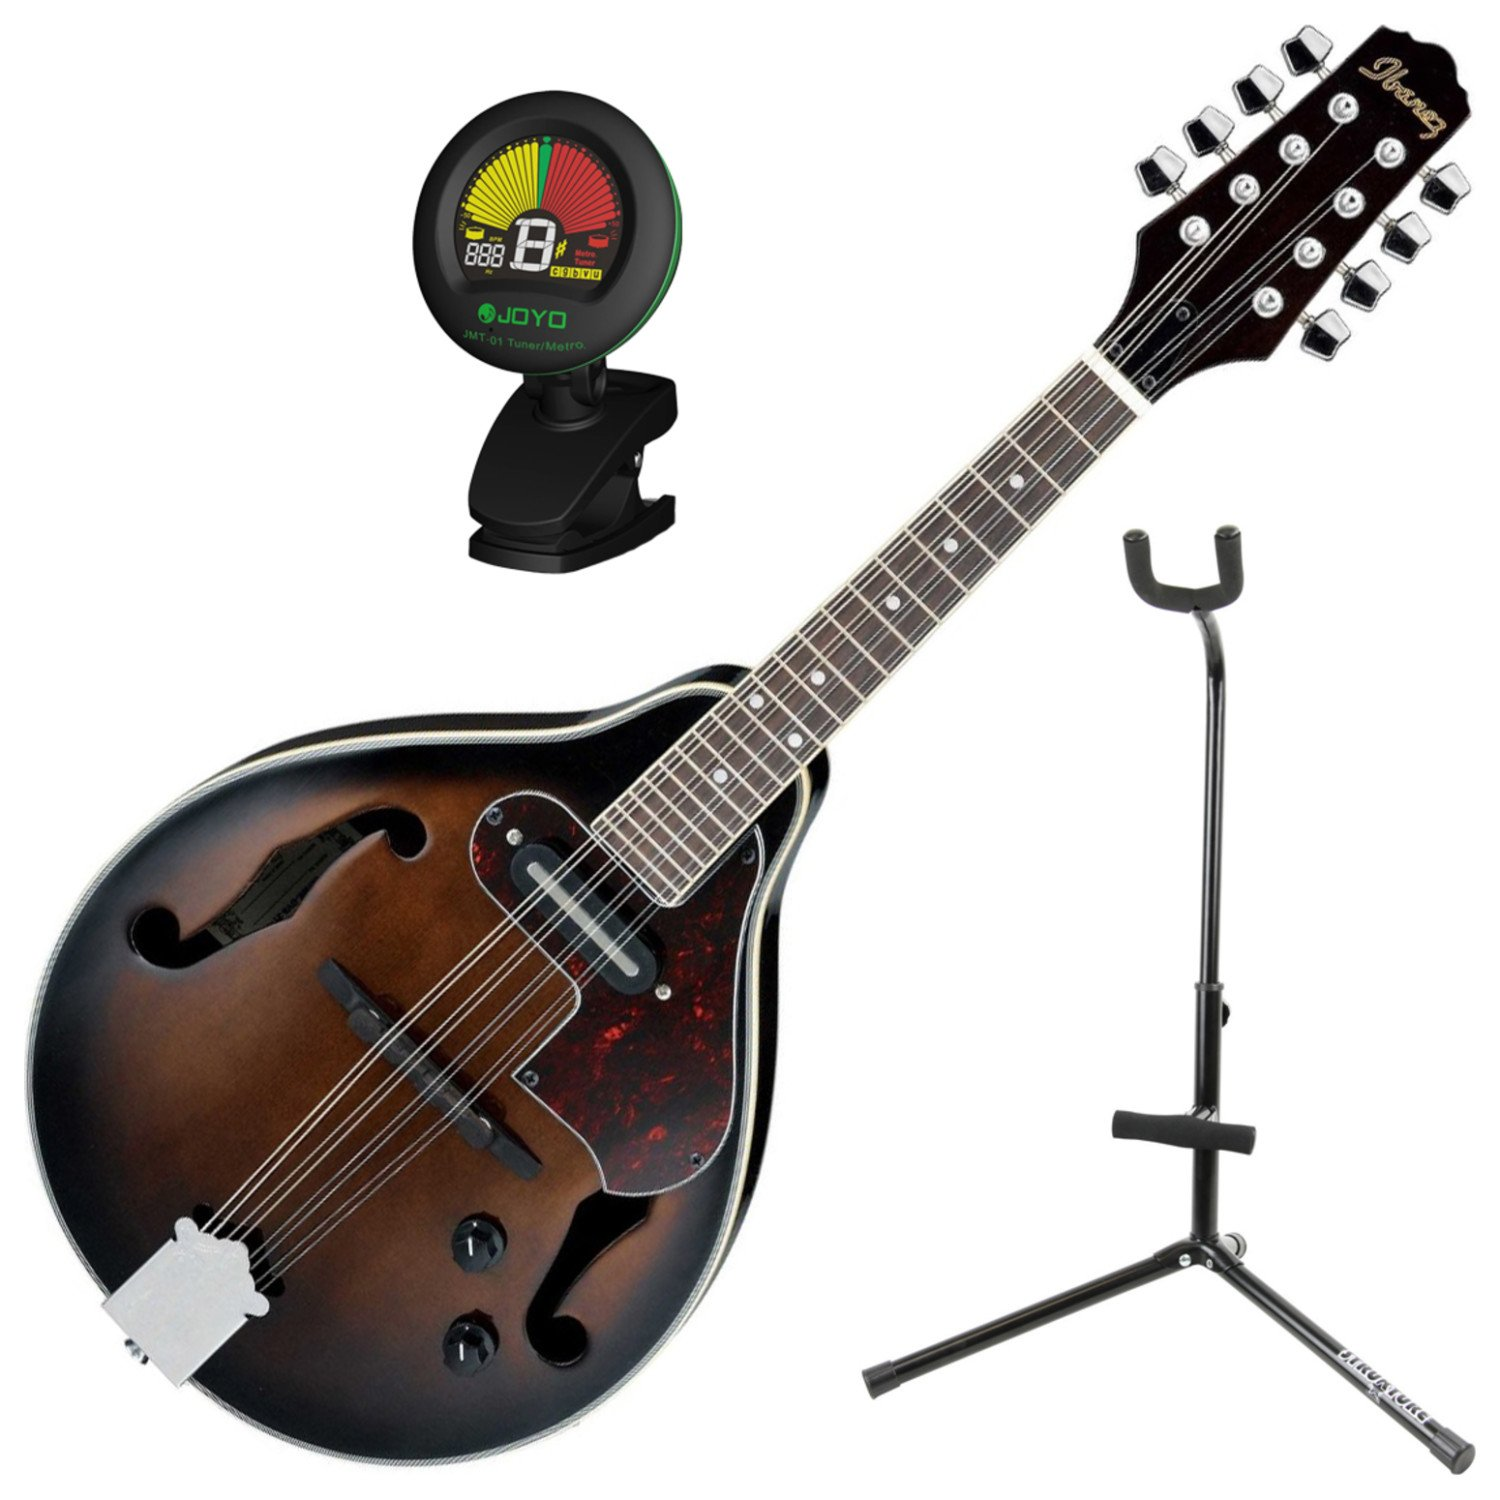 Ibanez M510EDVS A Style Electric Acoustic Mandolin Dark Violin Sunburst w/ Stand and Tuner M510EDVS BUNDLE